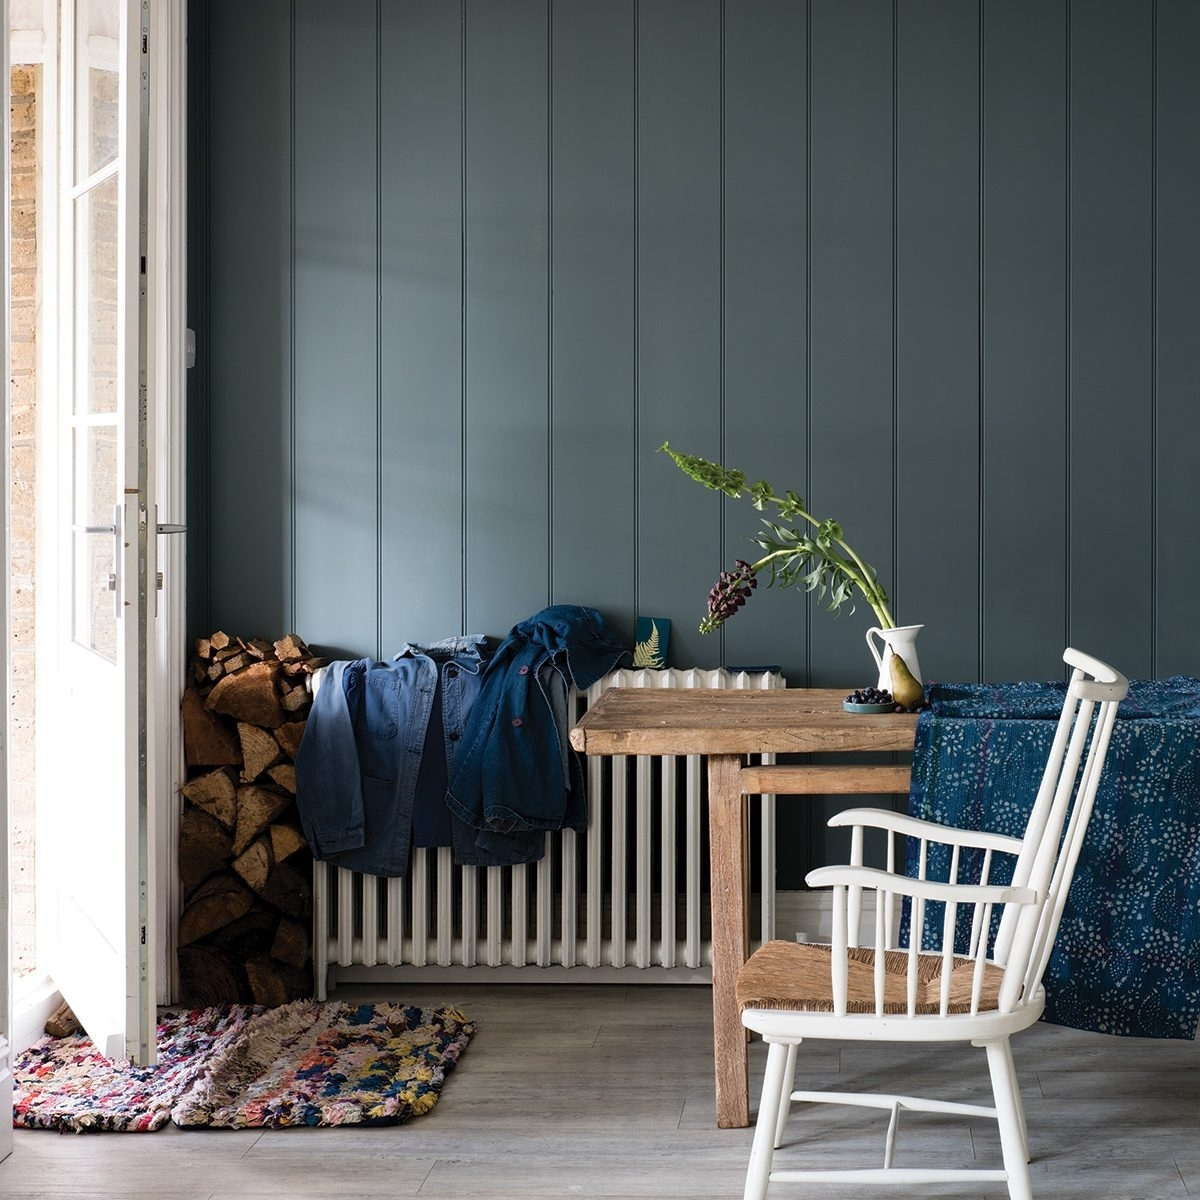 The Best Farrow & Ball Blue Paint – To Create A Brilliant 40+ Light Blue Farrow And Ball Living Room Inspirations